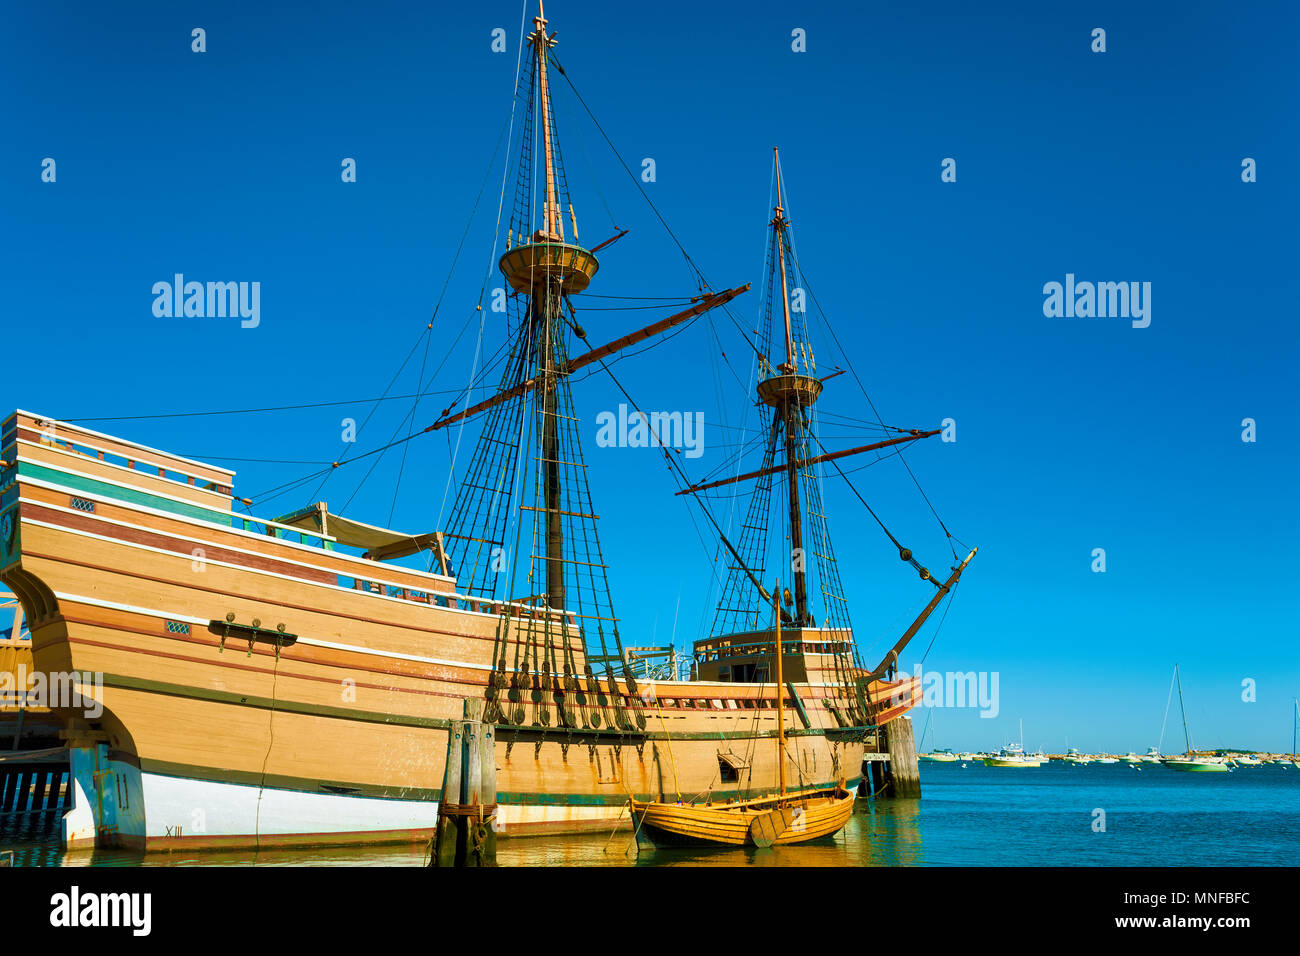 Plymouth, Massachusetts, USA - September 13, 2016:  The Mayflower II resides in the harbor, a replica of the 17th century Mayflower and it's dinghy. Stock Photo